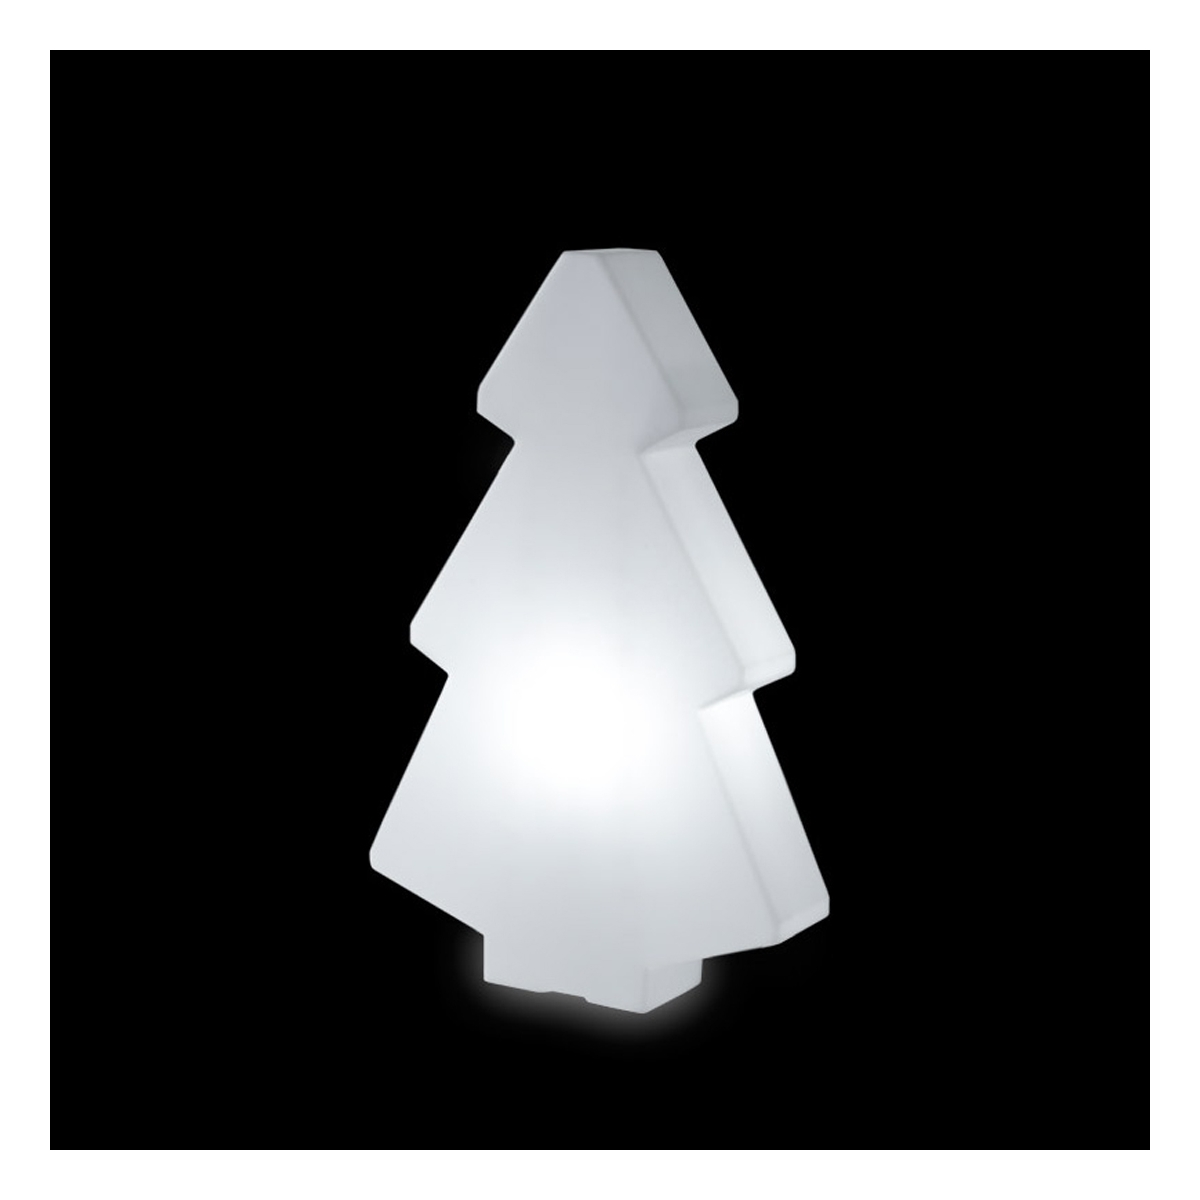 Sapin lumineux design lightree slide zendart design - Sapin design lumineux ...